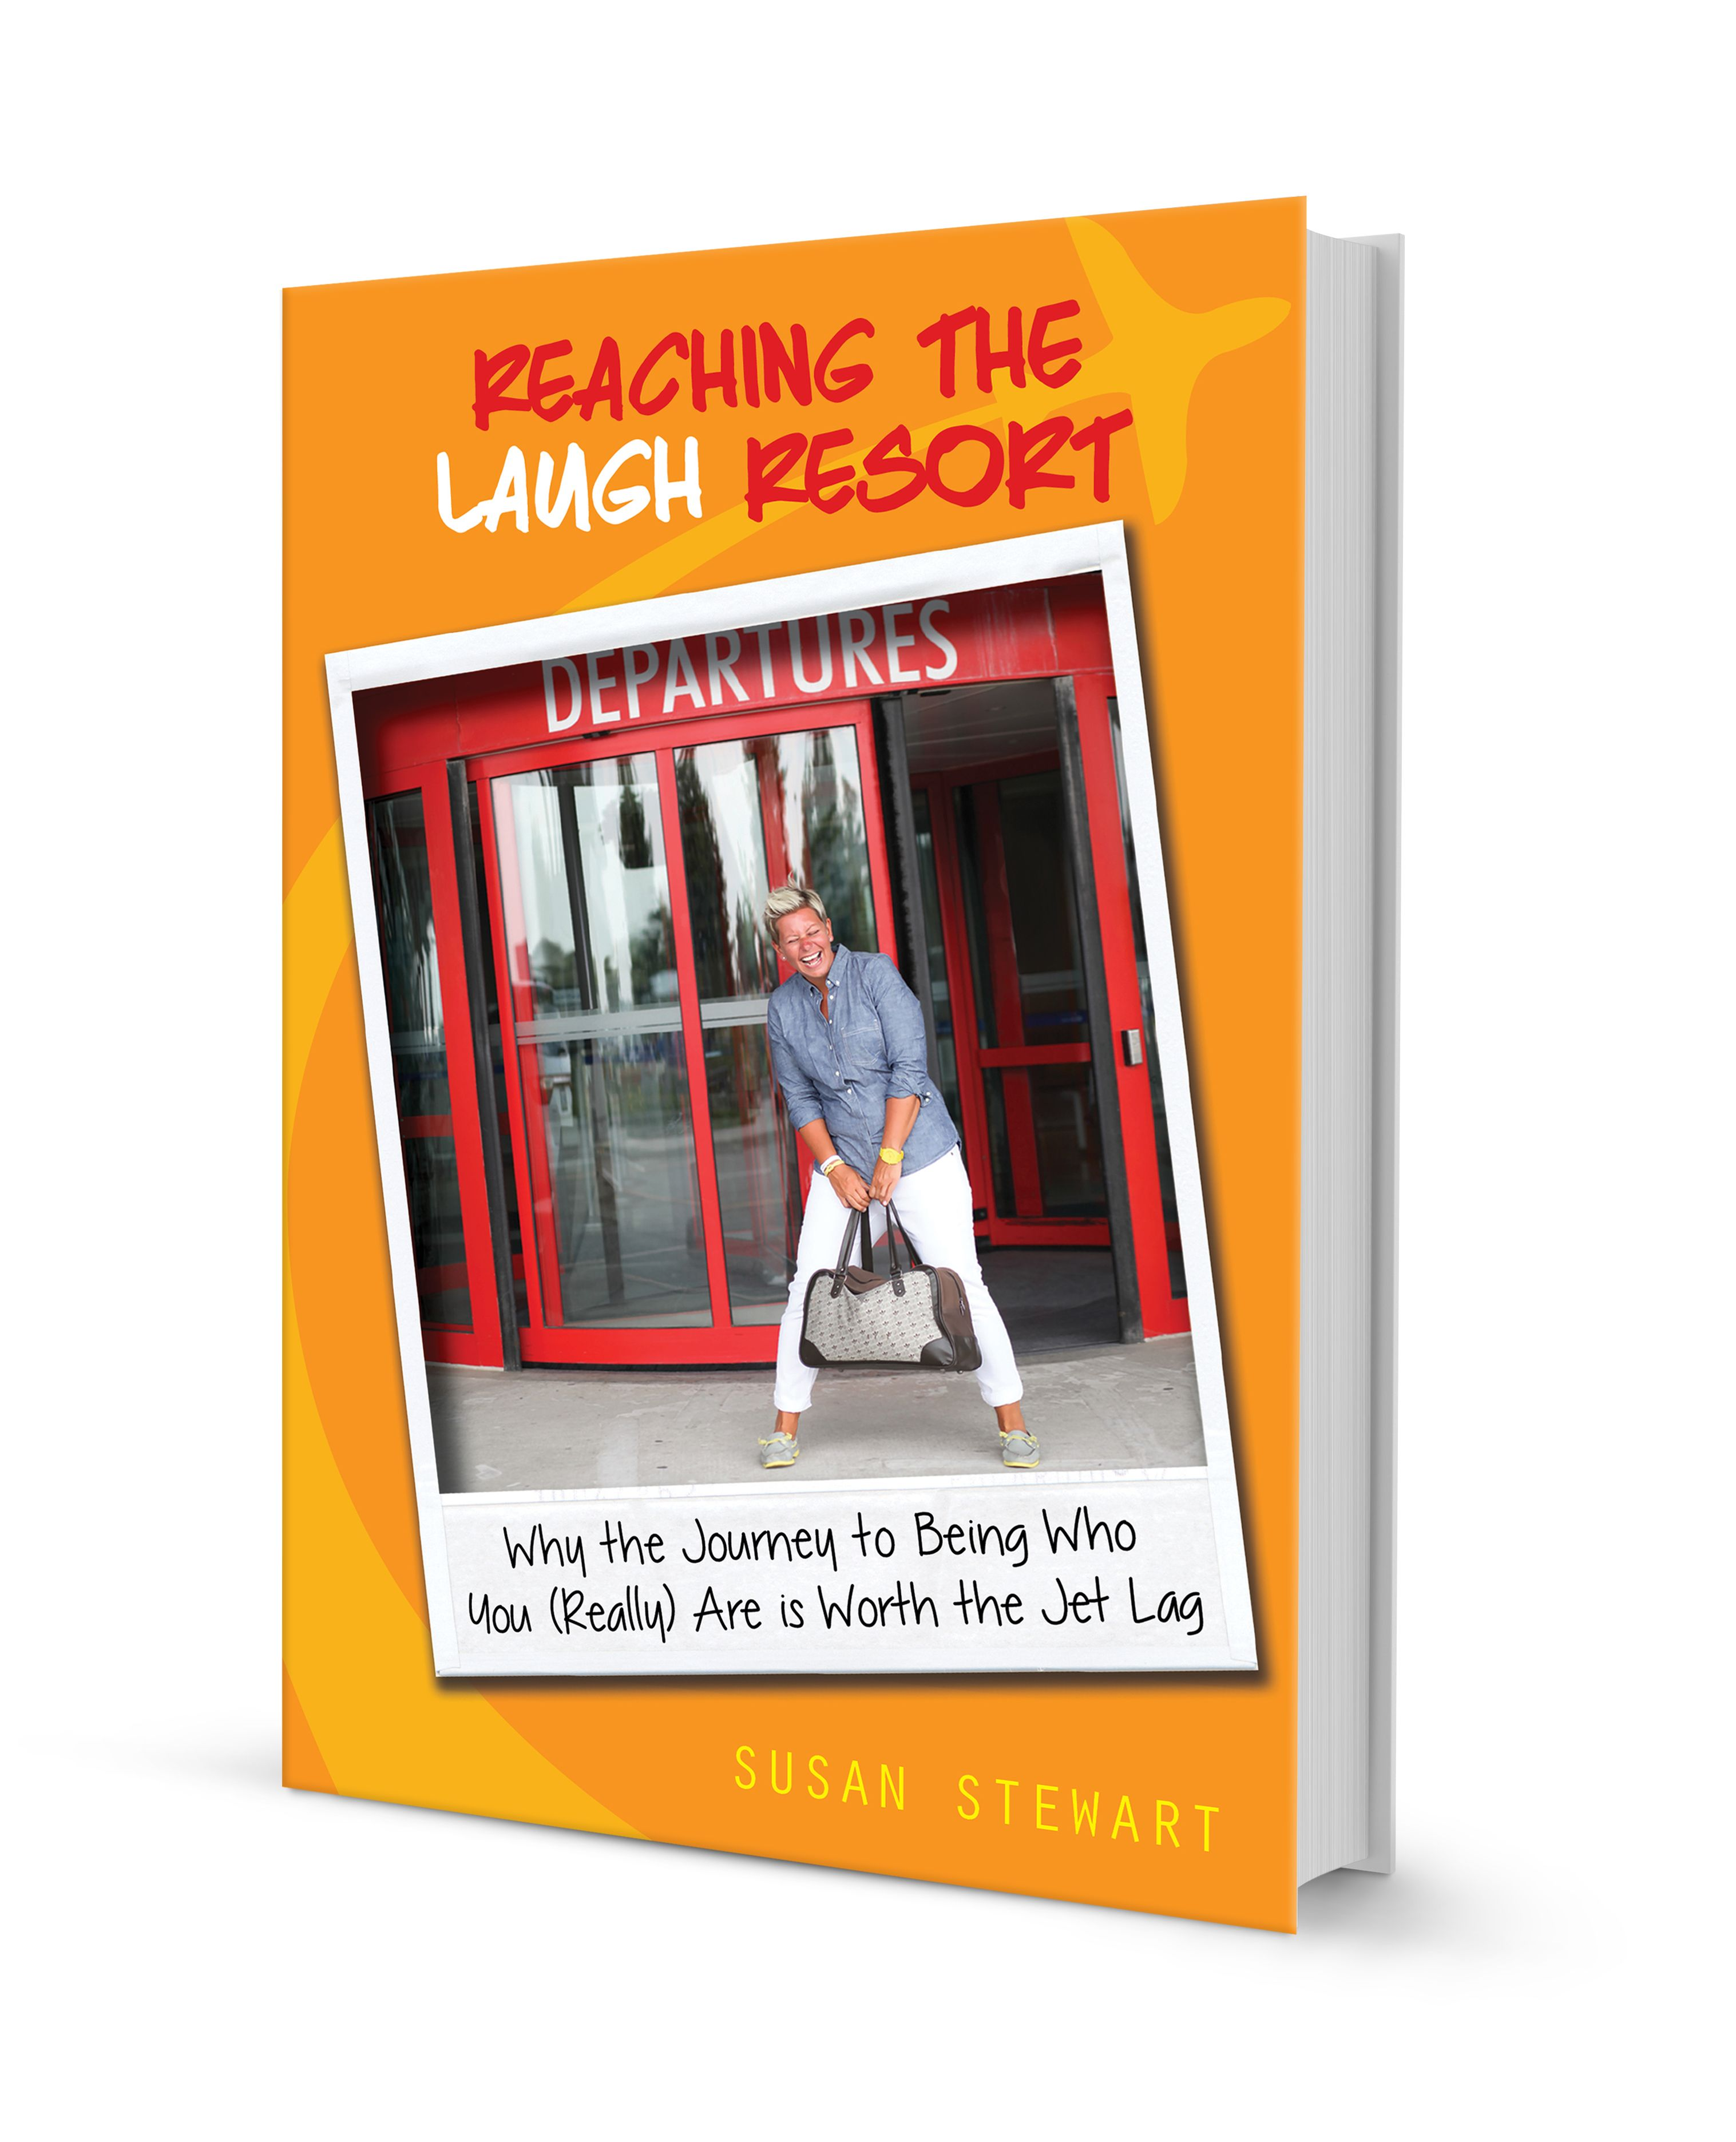 Reaching The Laugh Resort E-book For Kindle